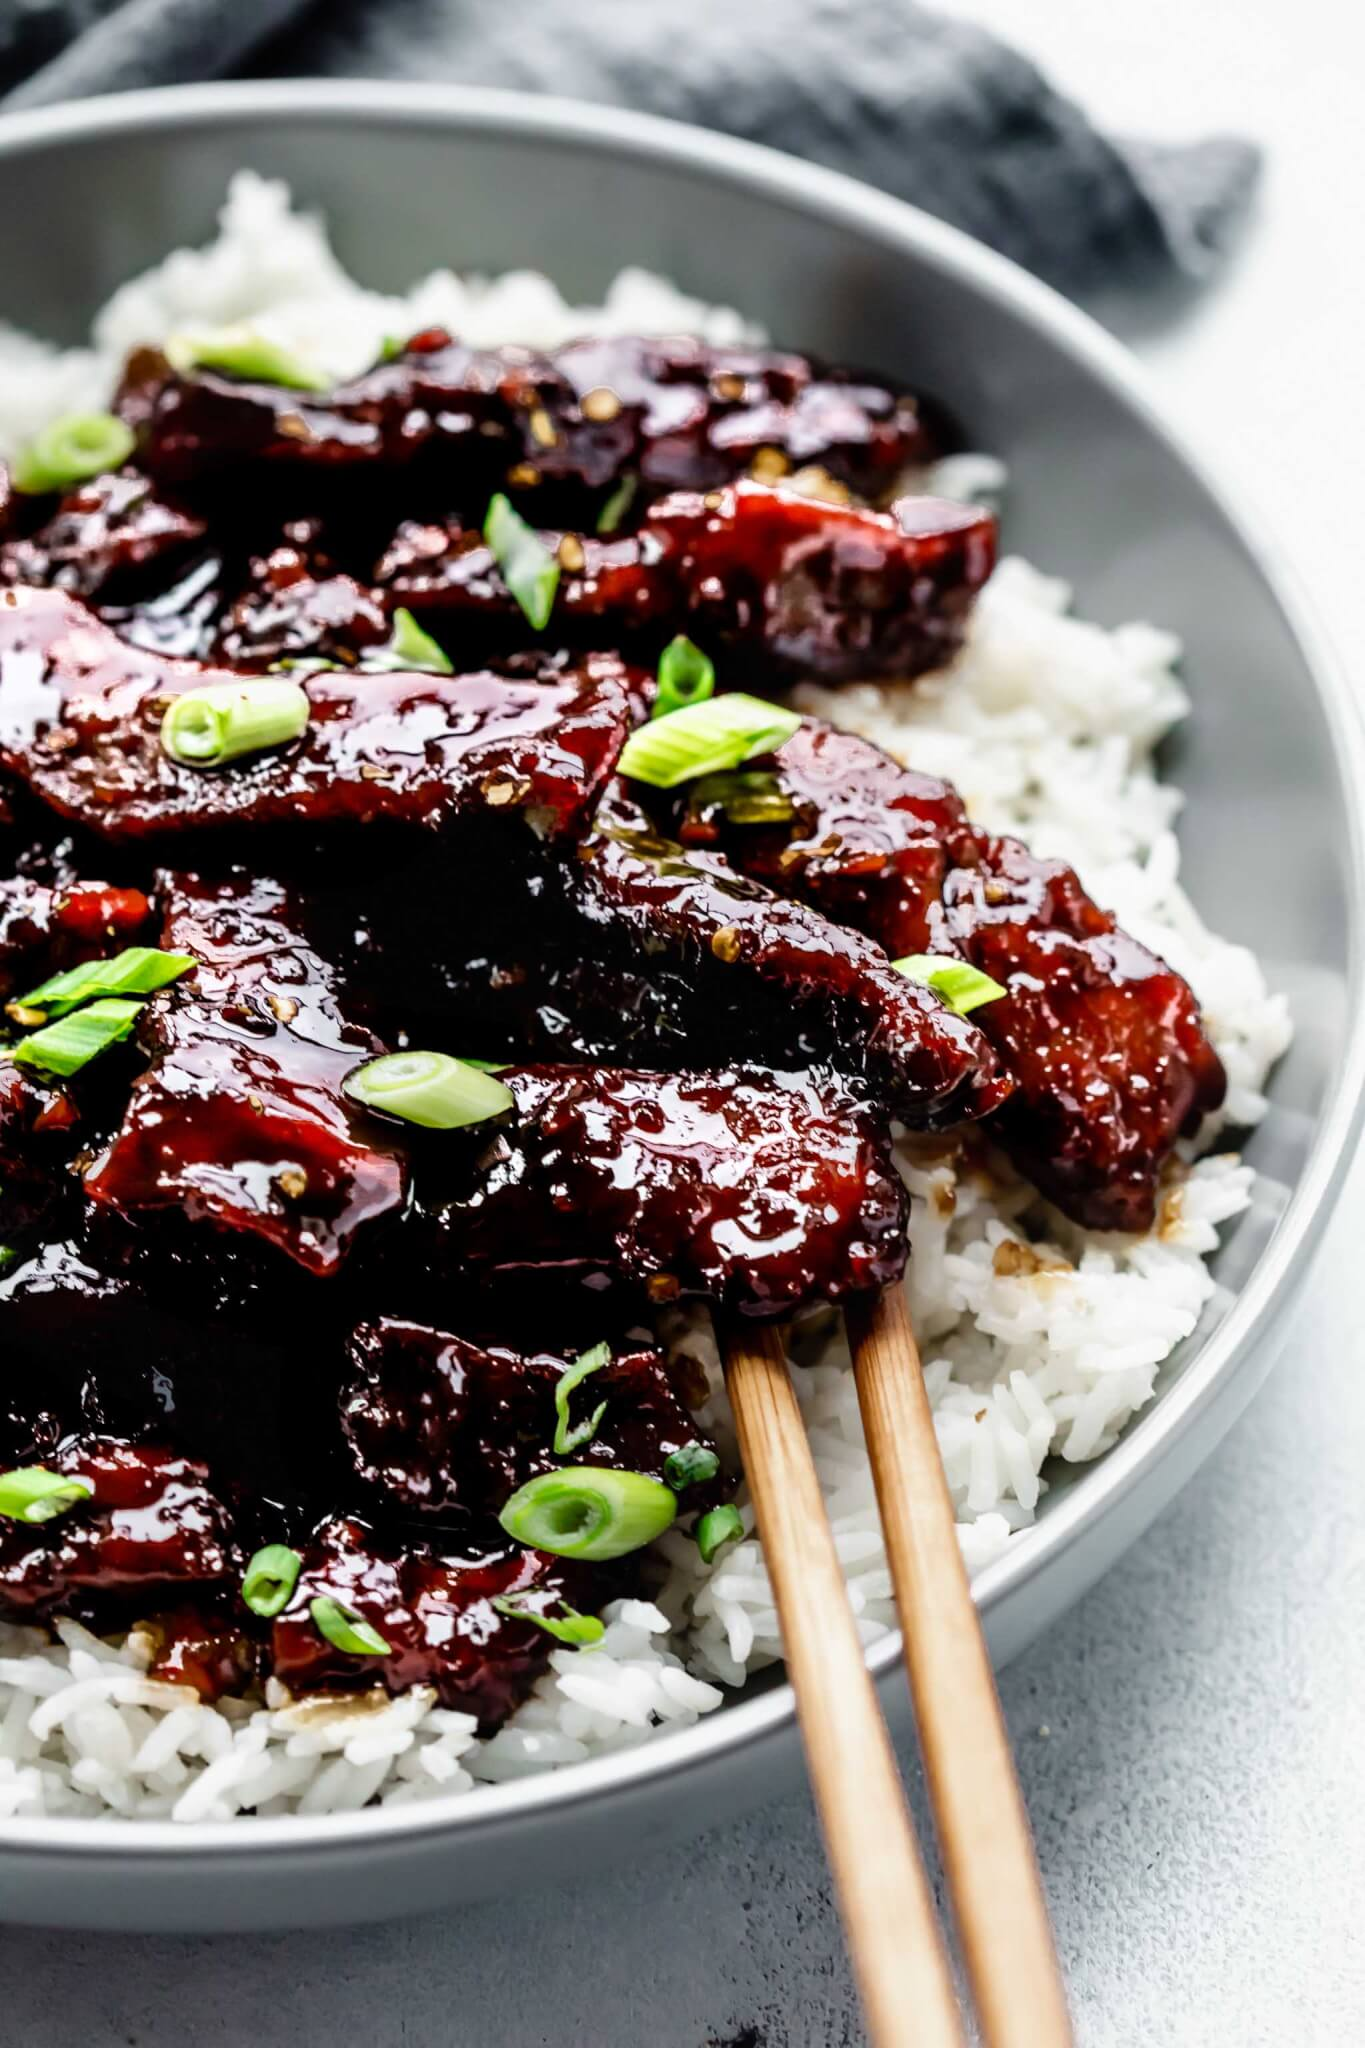 Side view of mongolian beef served on top of rice in grey bowl with chopsticks.